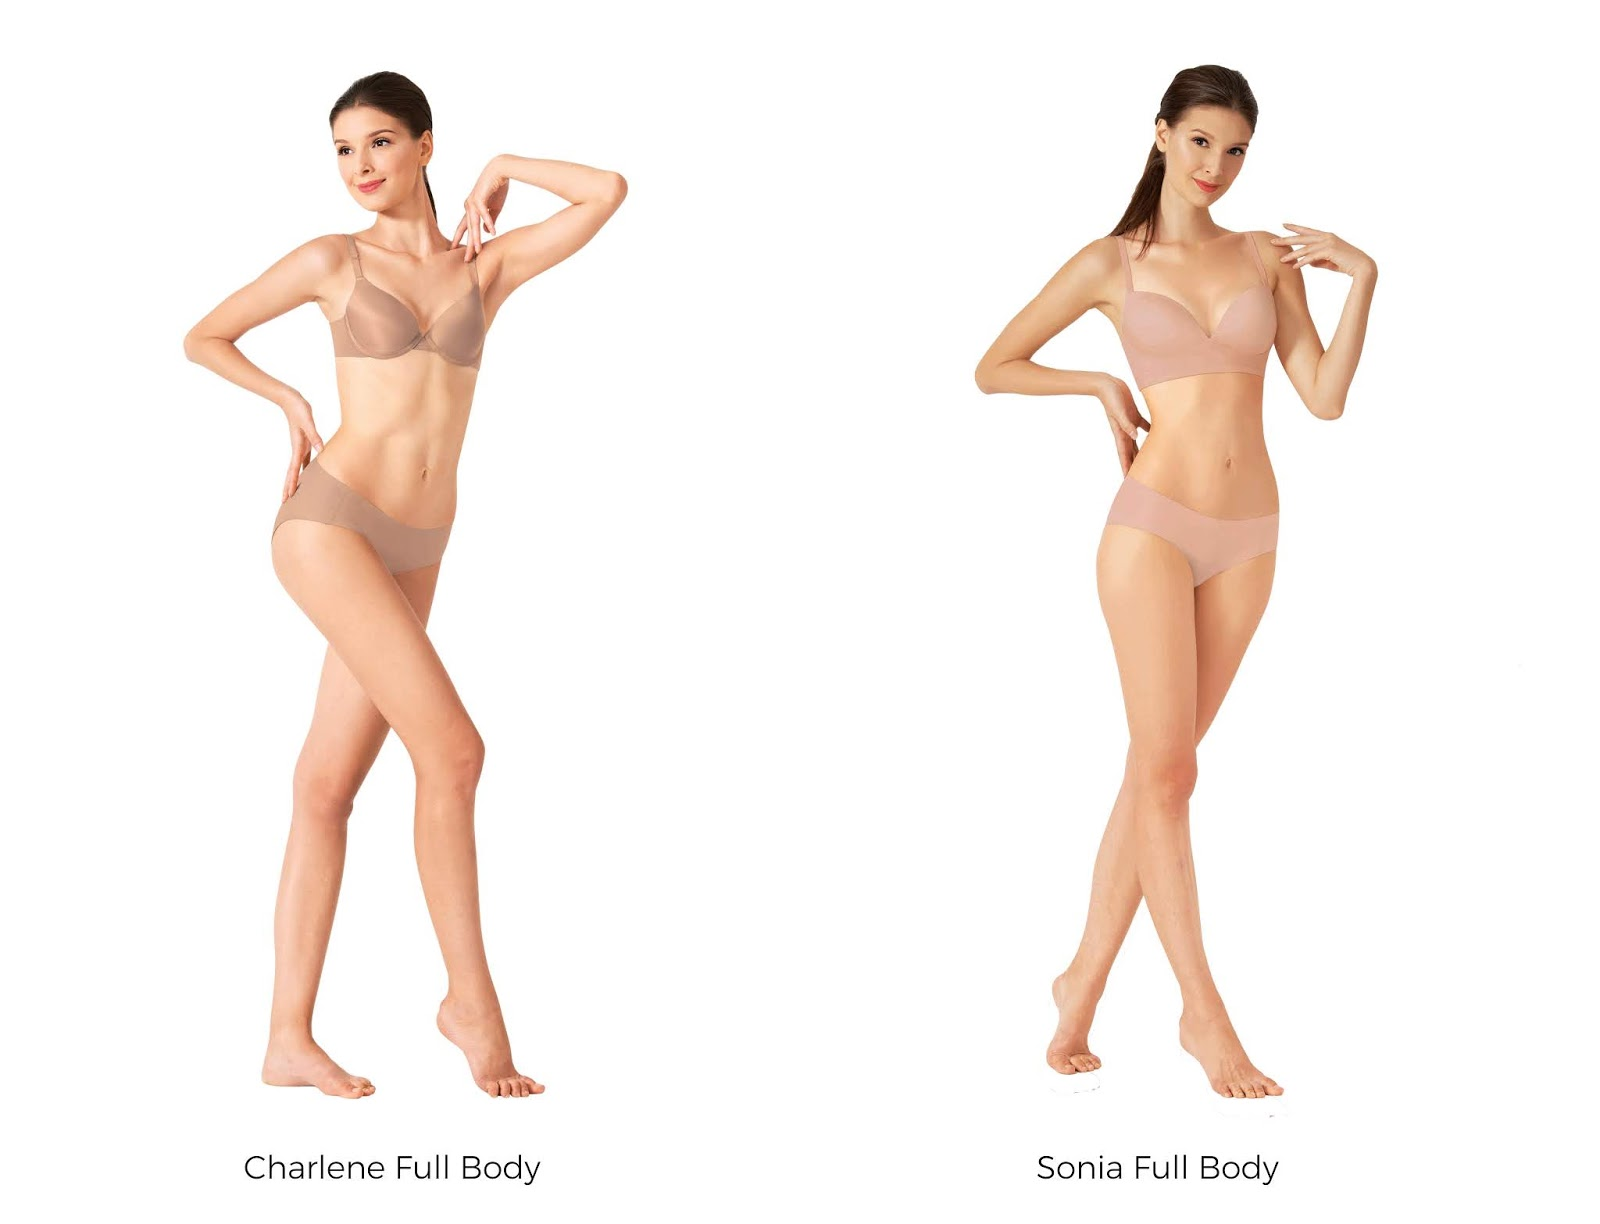 AVON FASHIONS' NEW BODY ILLUSION IS YOUR LIGHTEST, MOST COMFORTABLE UNDERWEAR EVER